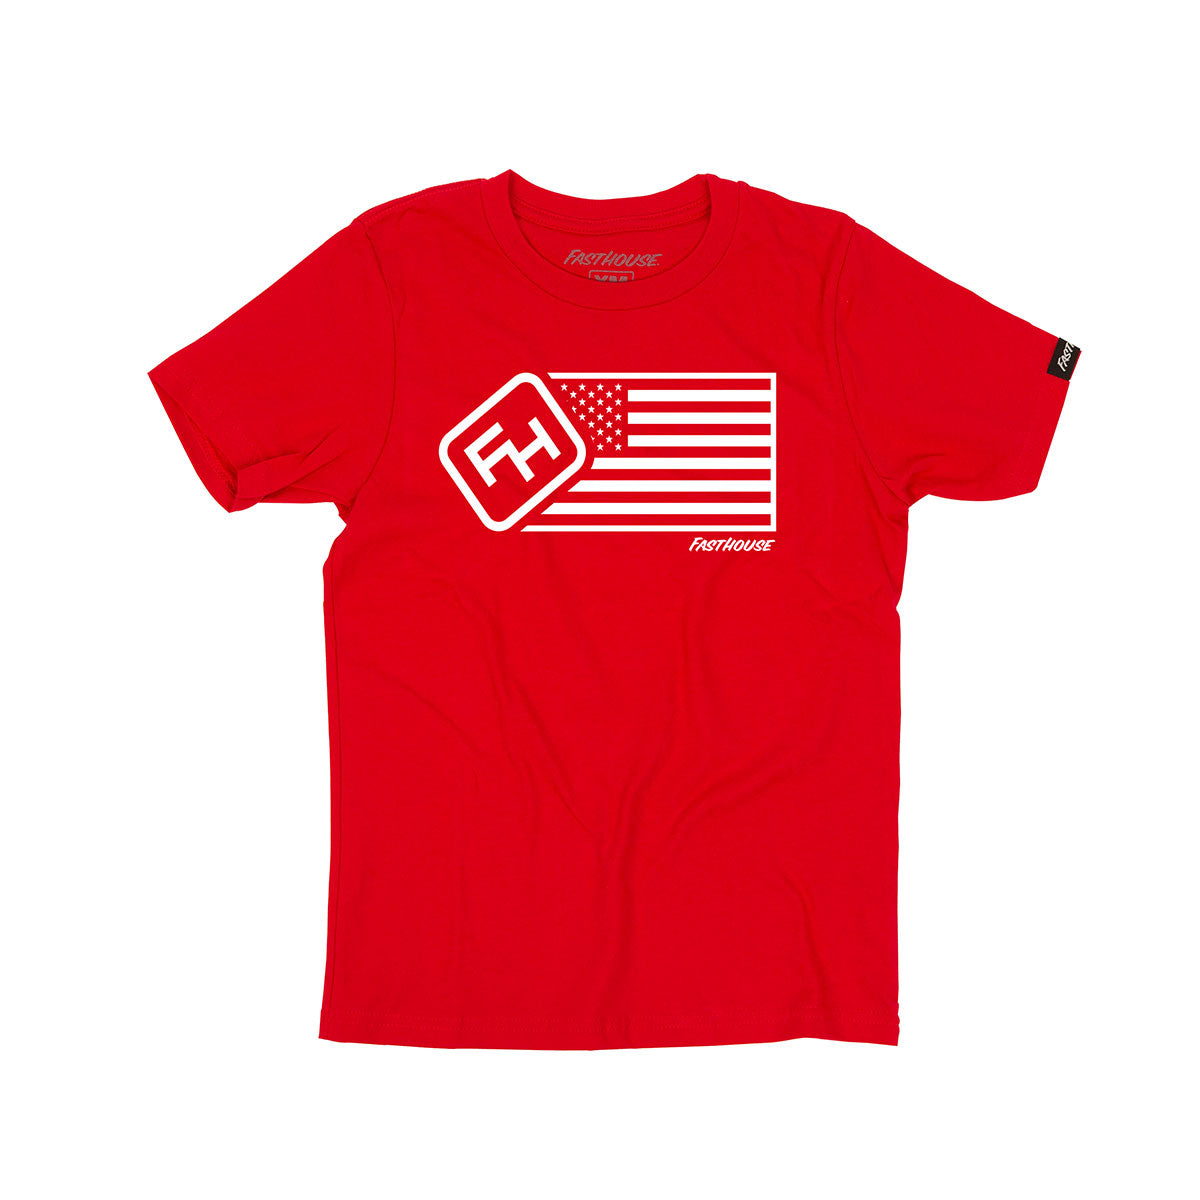 Fasthouse - USA Youth Tee - Red